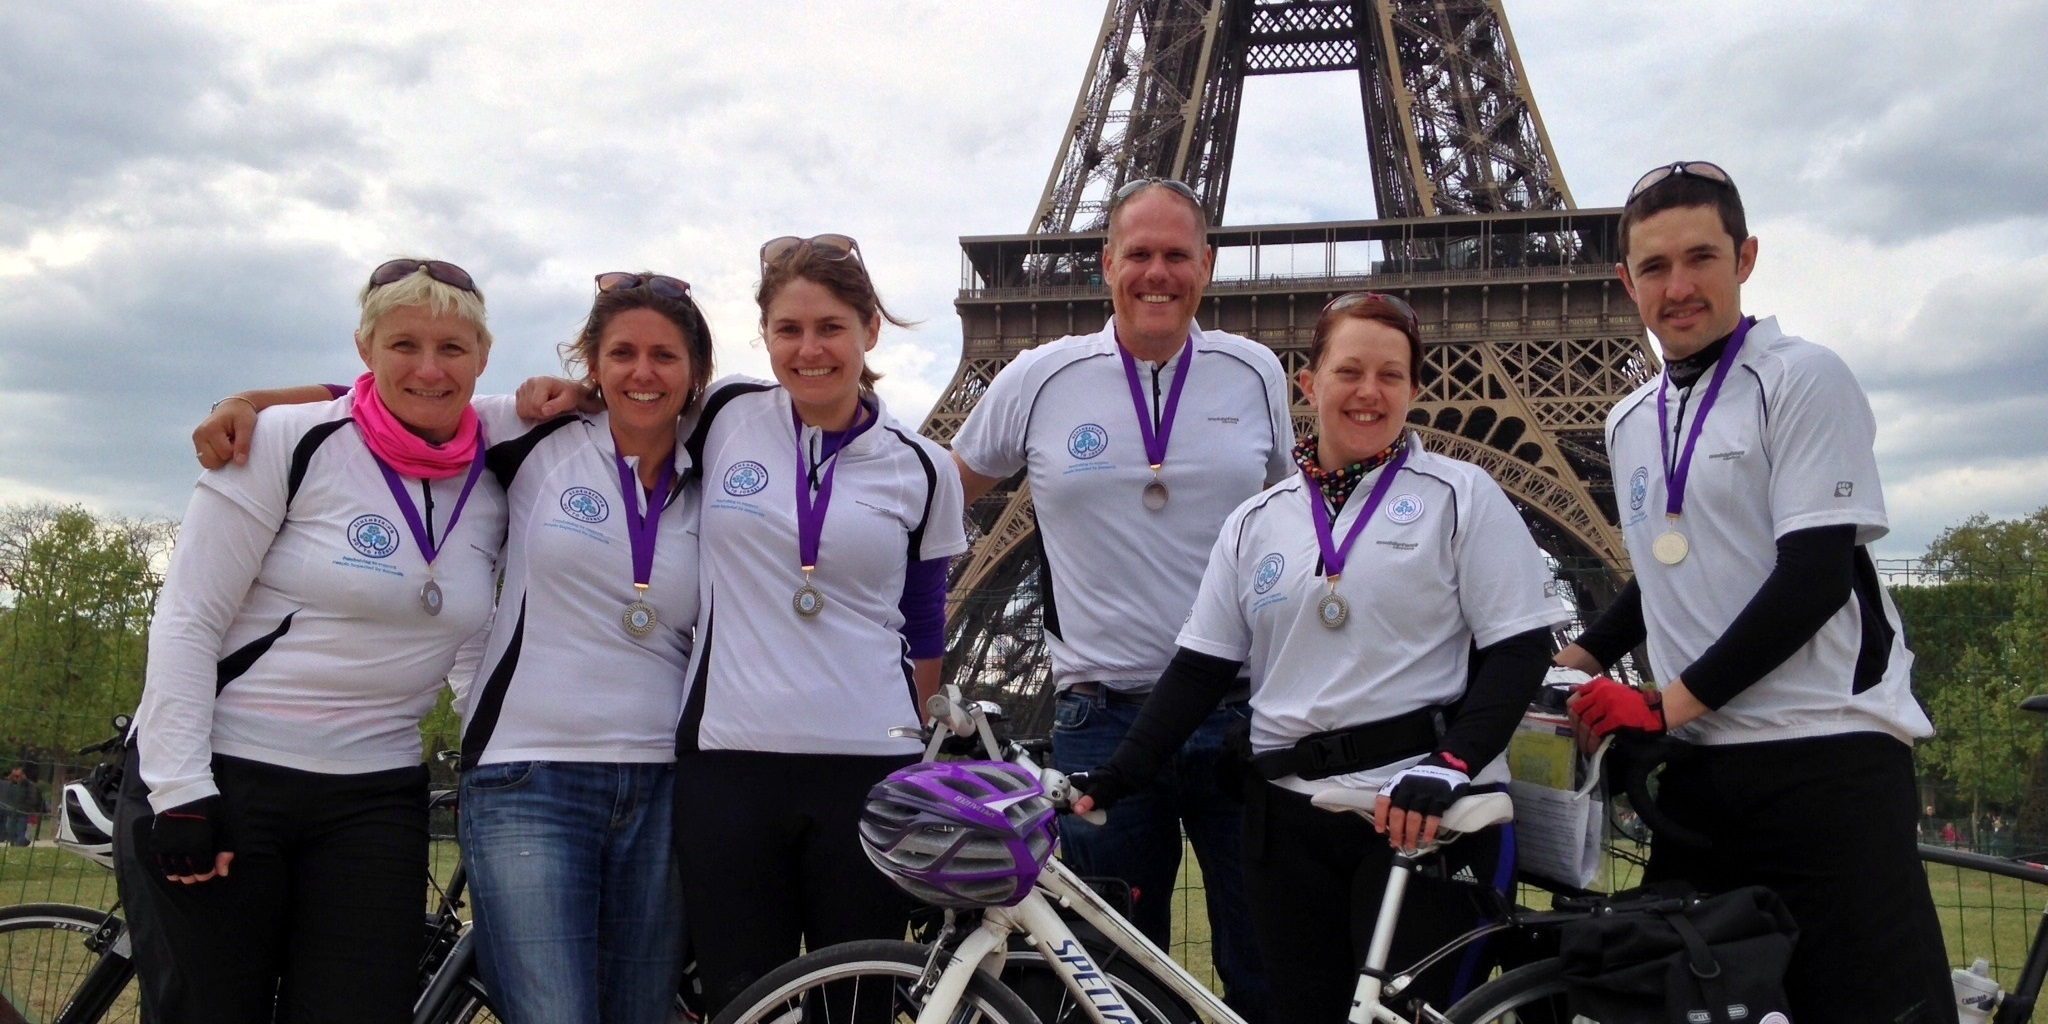 Team RNF in Paris